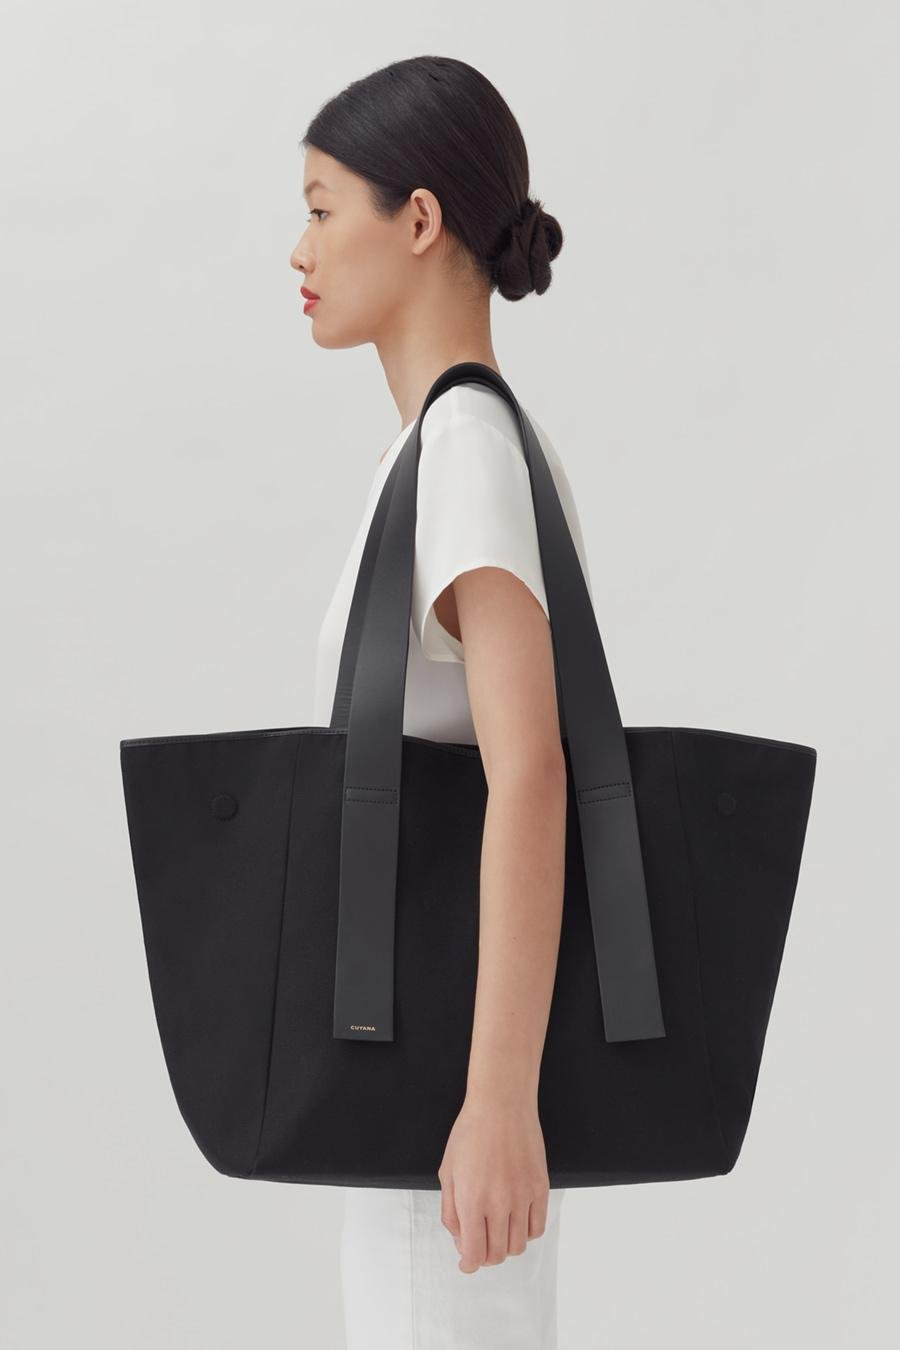 Women's Canvas Tote Bag in Black   Canvas & Smooth Leather by Cuyana 3